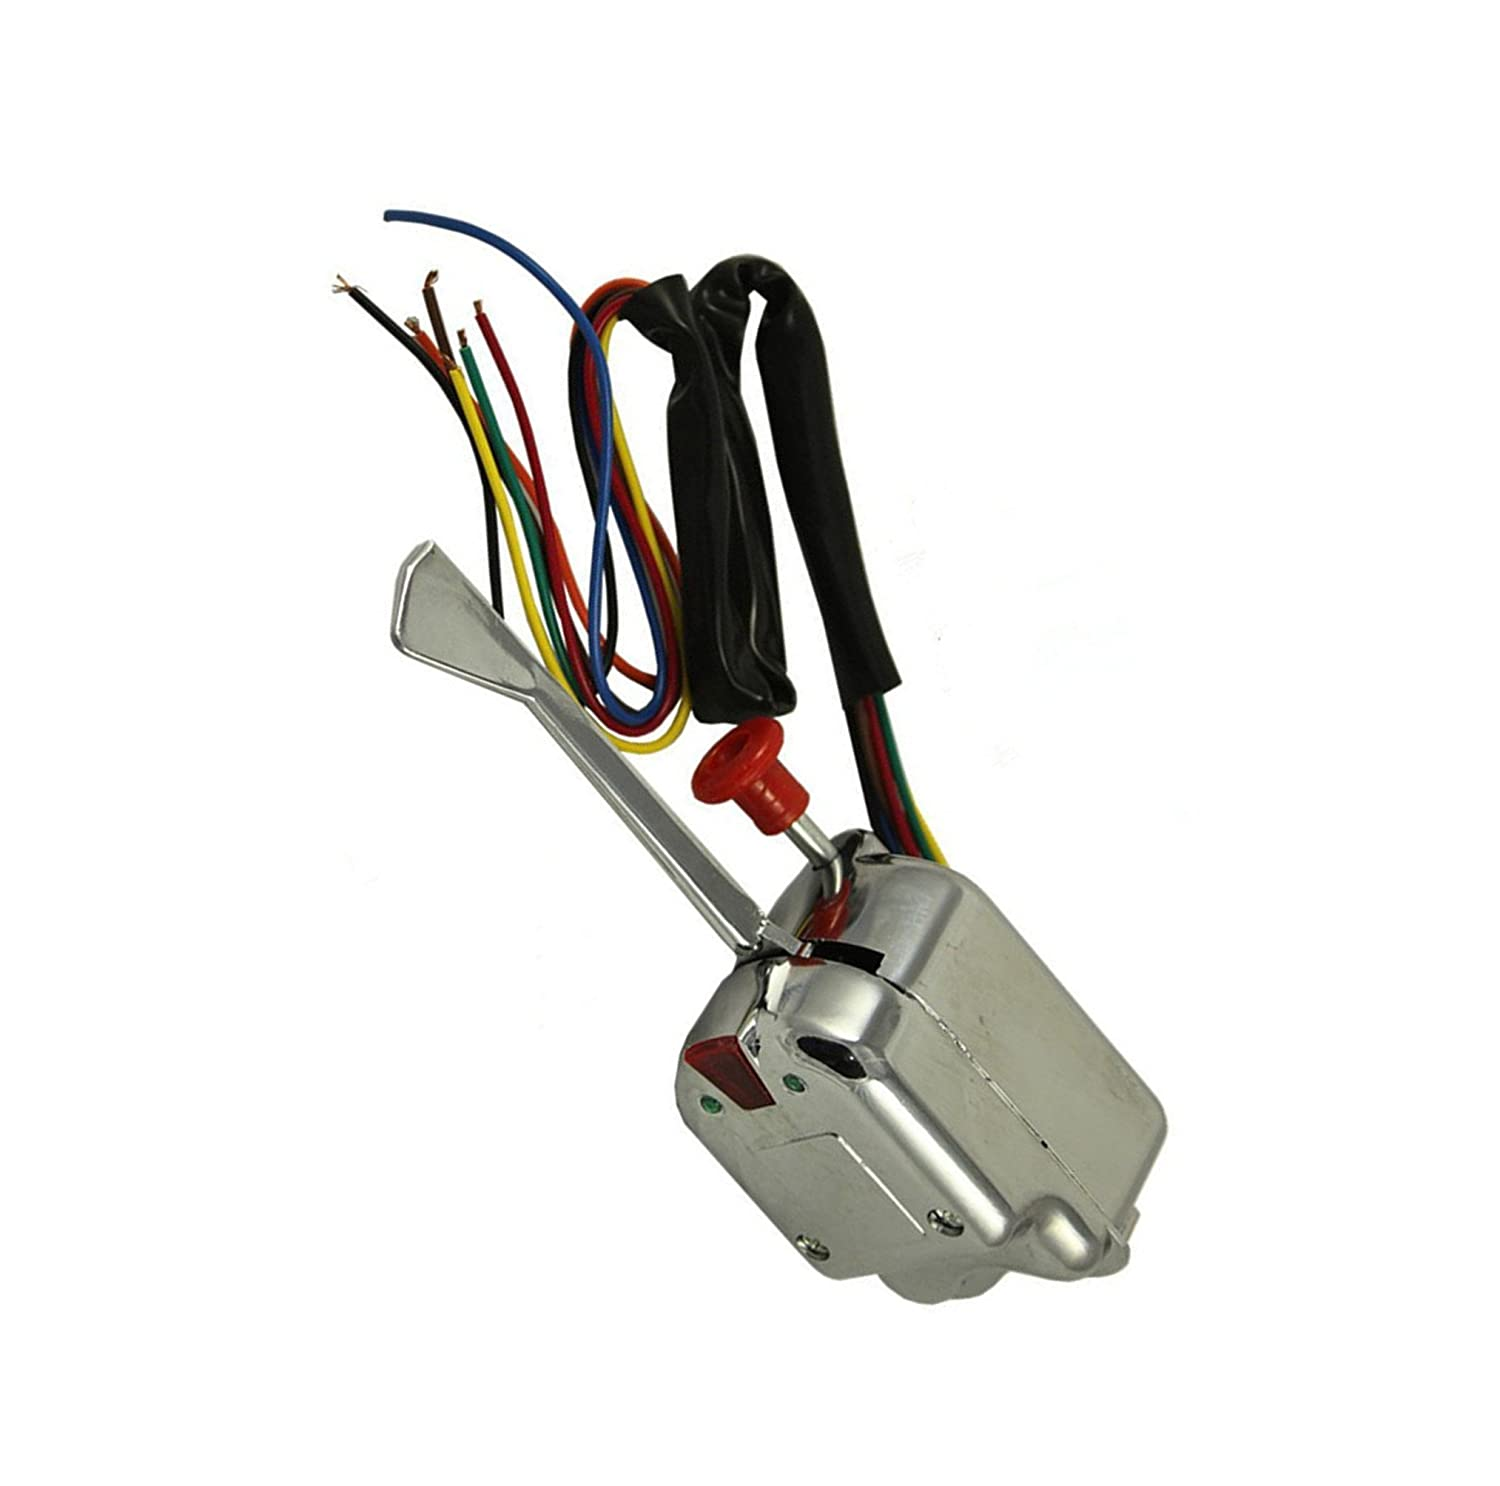 Wilk New Universal Street Hot Rod Chrome Turn Signal Switch For Heavy Duty Buick Ford Gm 12v